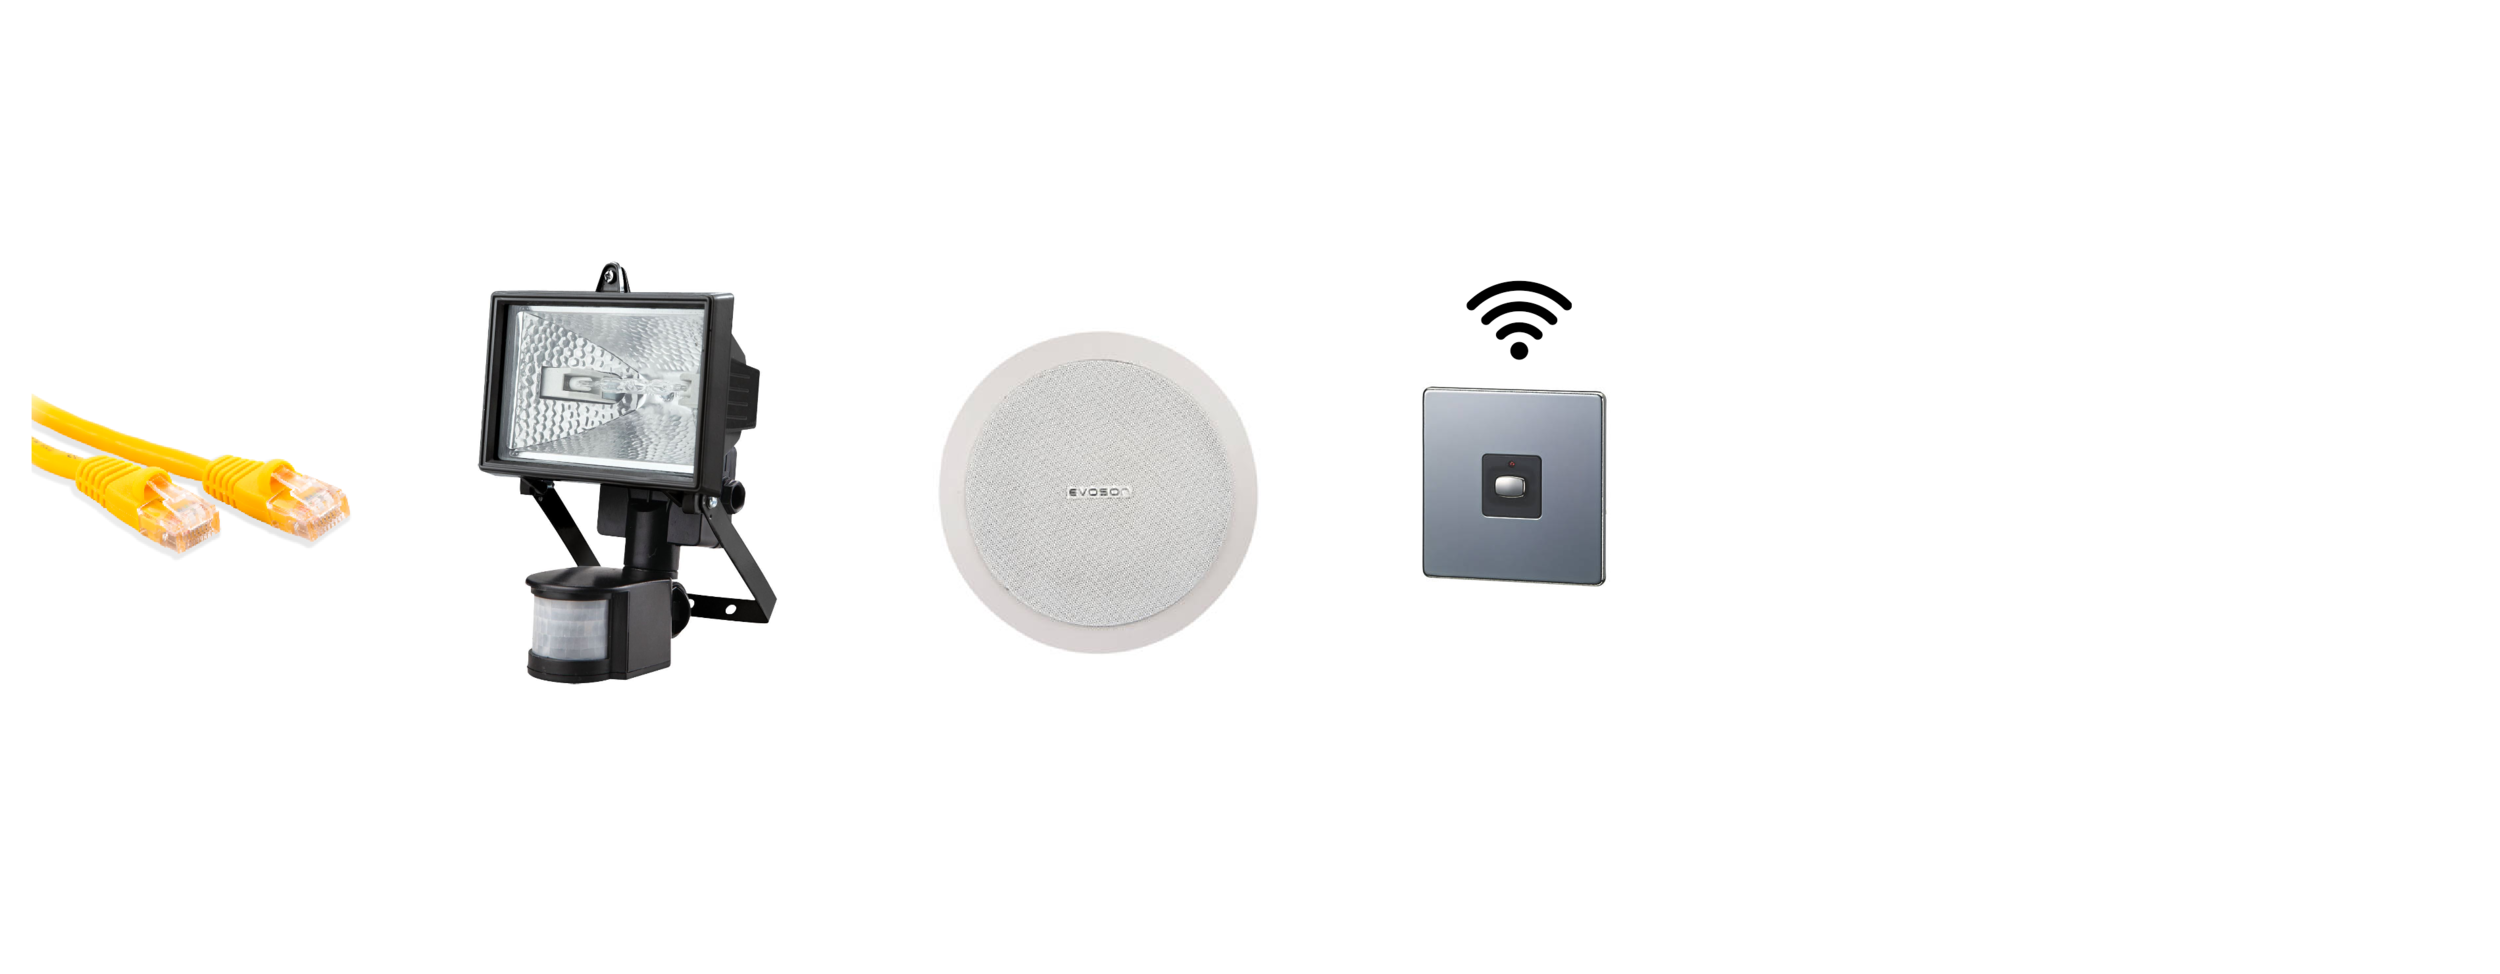 Additional Electrical Options - As options:Cat 6 cablePIR lightsSmart plug & socketsIndoor & outdoor speakers